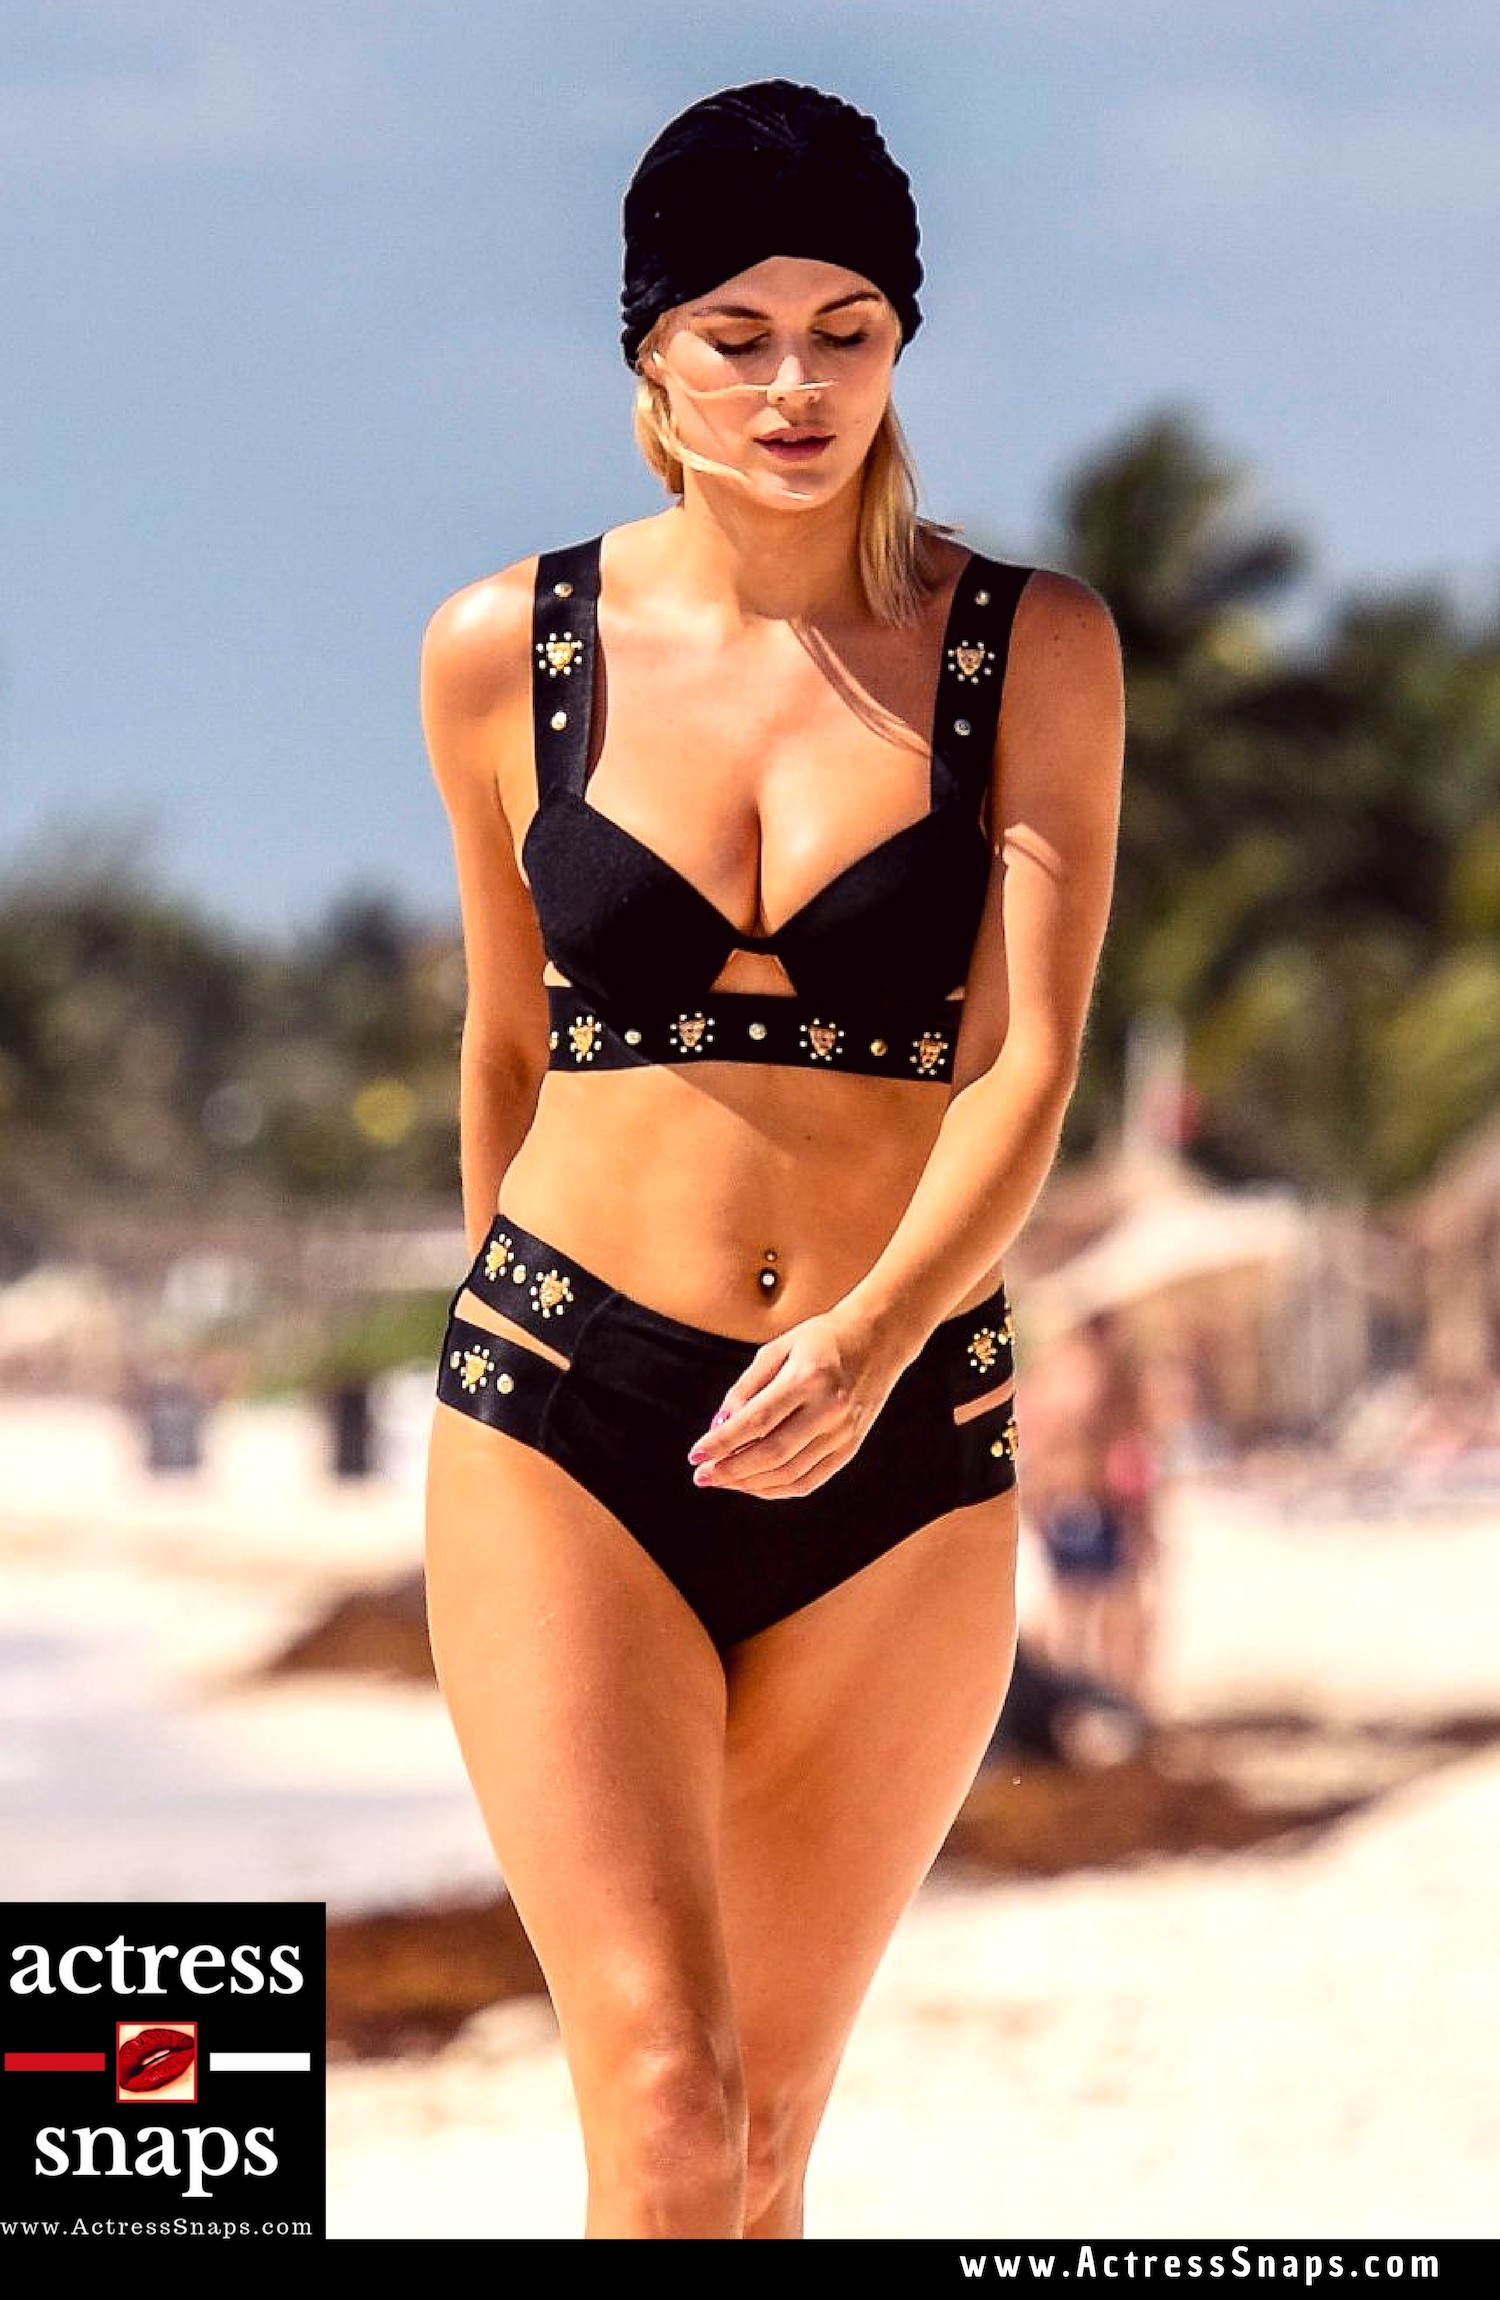 Ashley James - Sexy Bikini Photos - Sexy Actress Pictures | Hot Actress Pictures - ActressSnaps.com